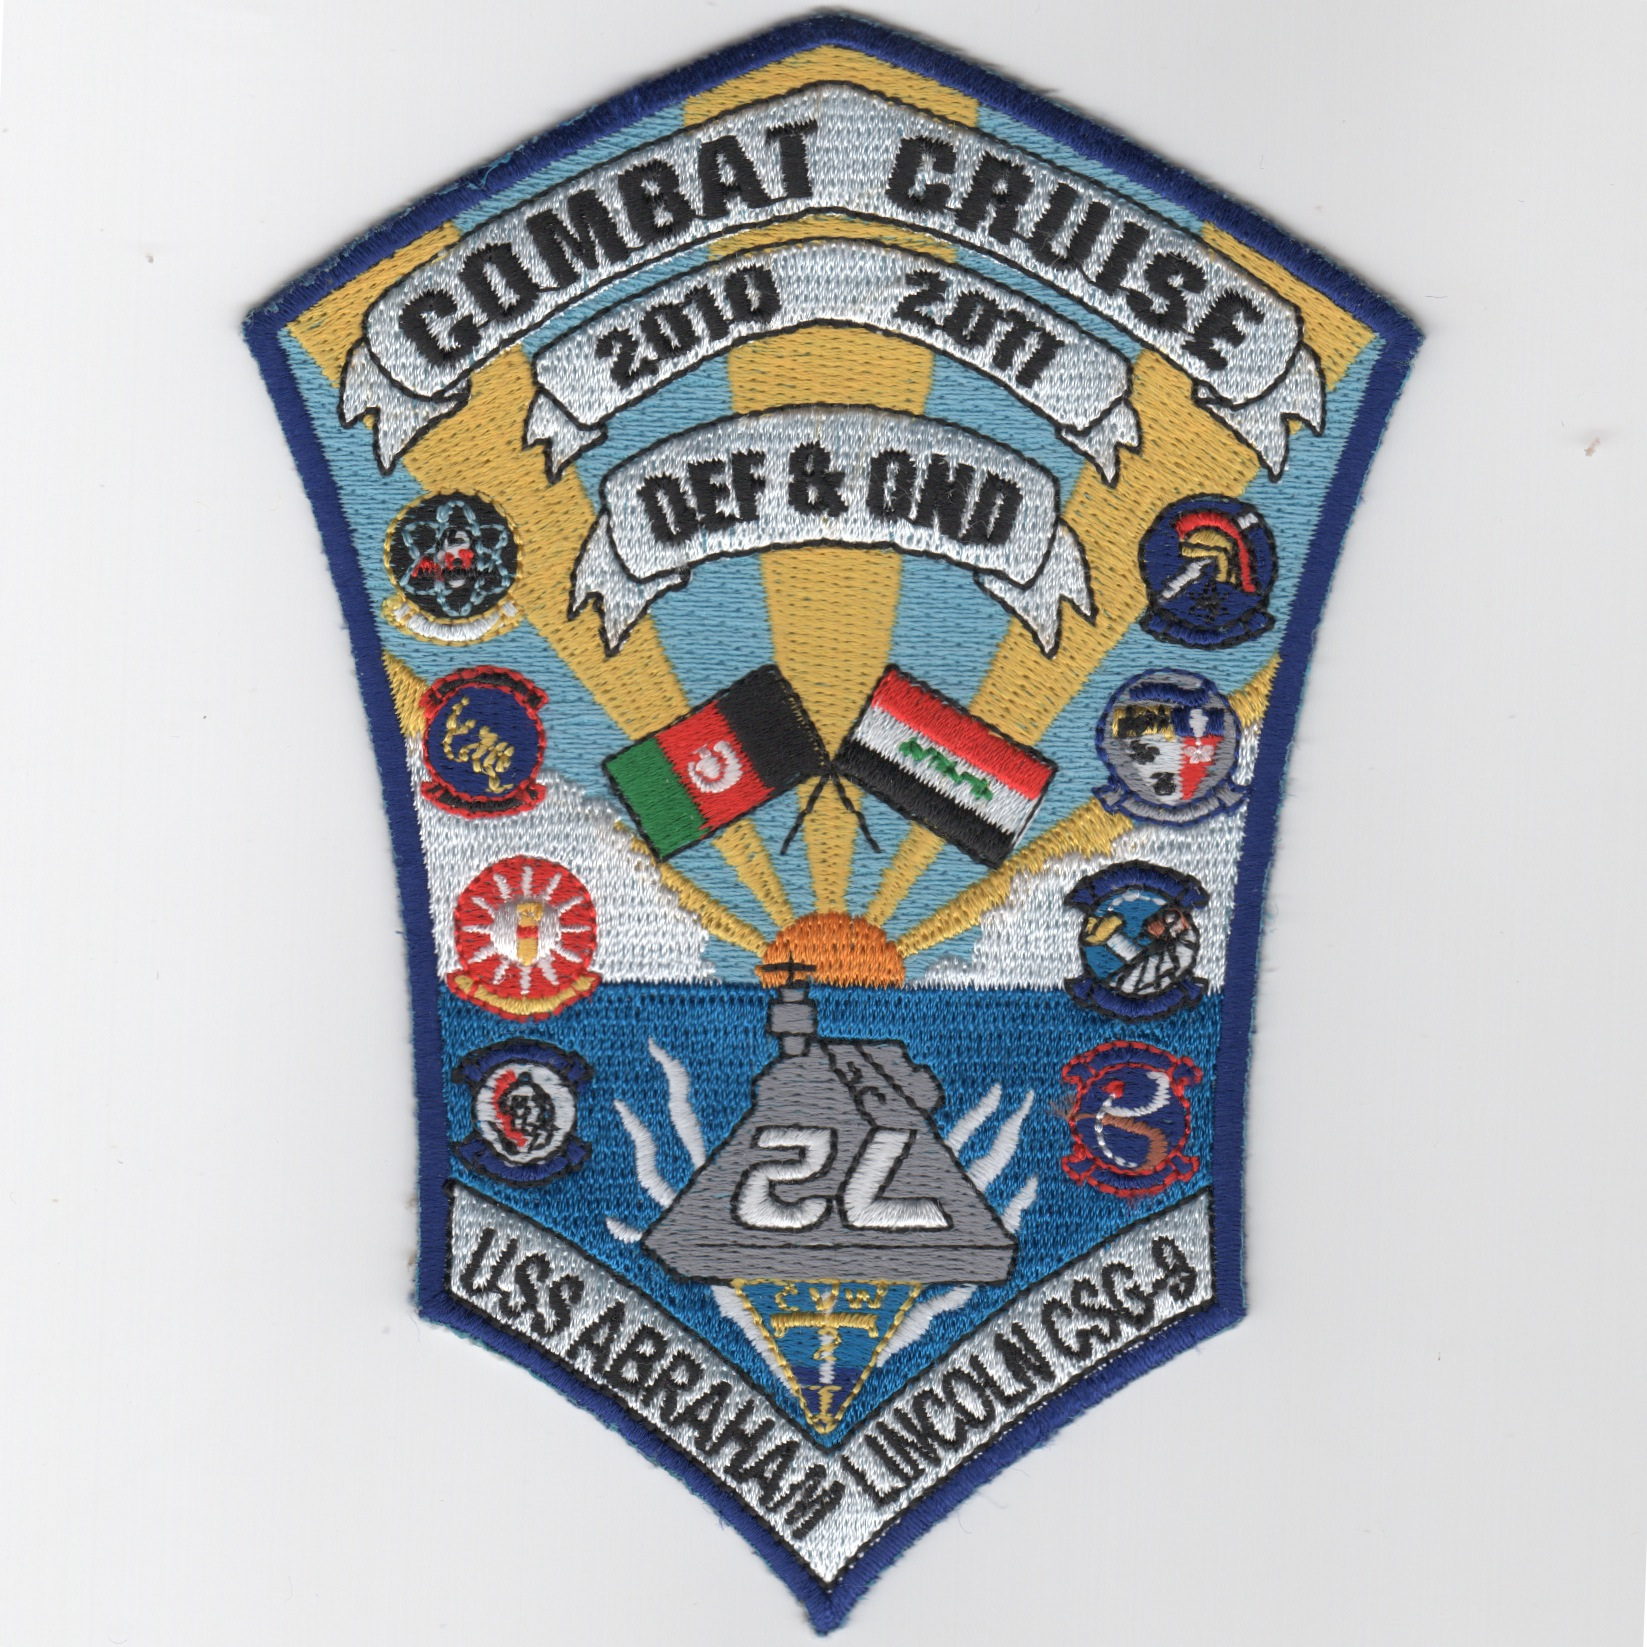 CVN-72/VAQ-131 2010/2011 OEF/OND Combat Cruise Patch (Shield)